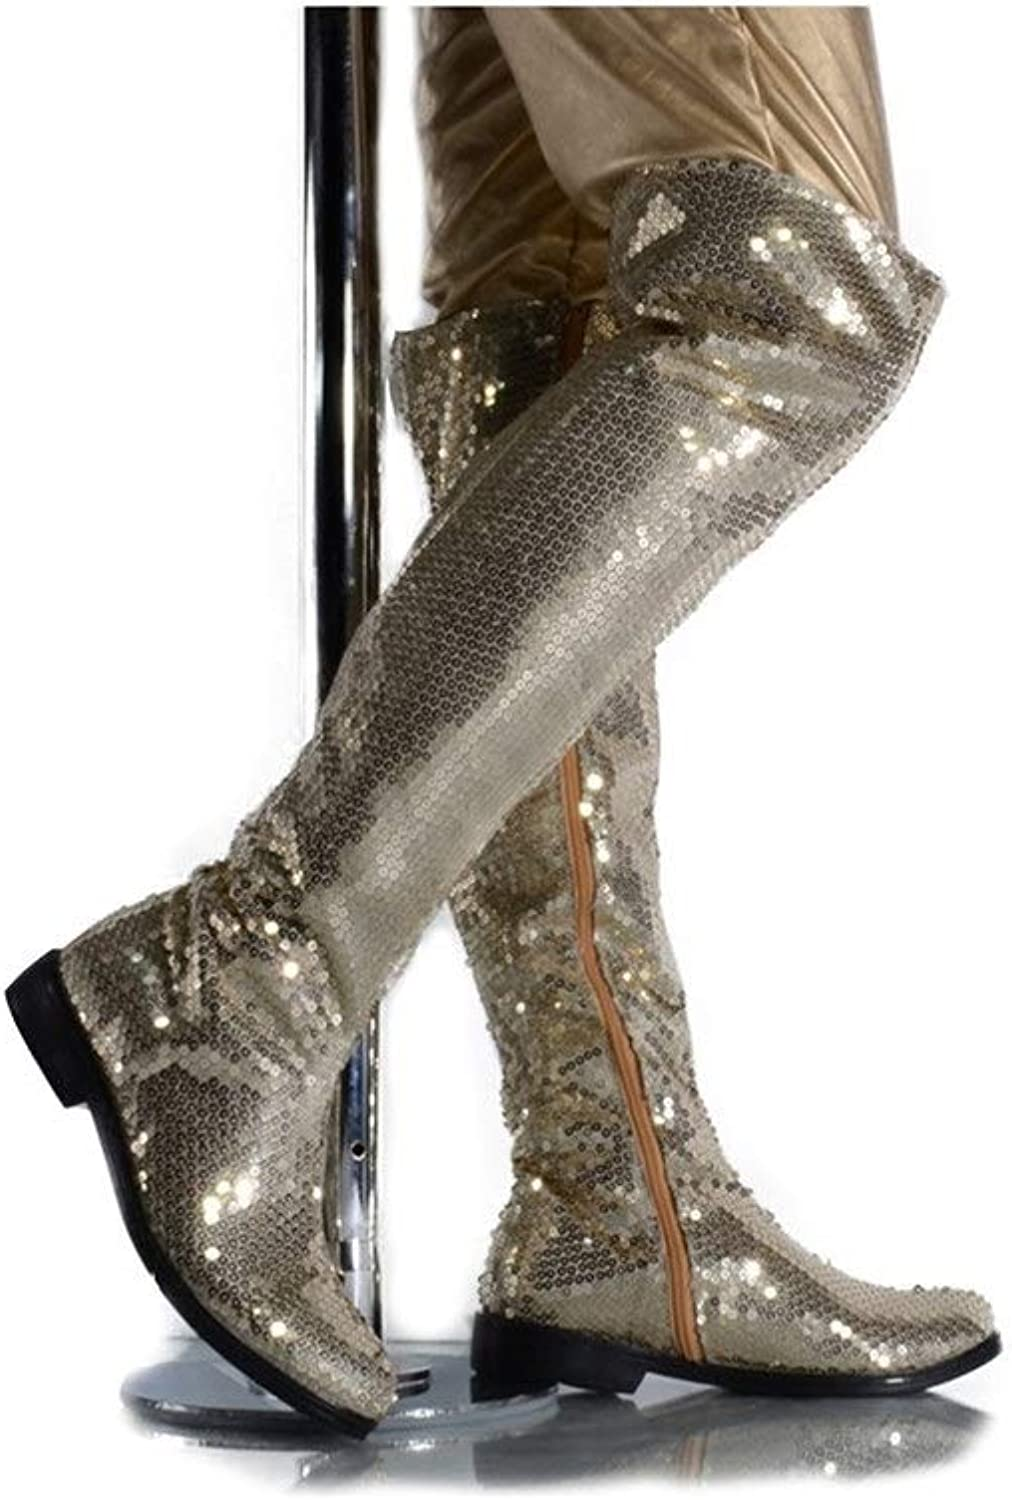 DADIJIER Men's Stage Perform Over The Knee High Boots Shiny Sequins Side Zipper Motorcycle Boots Durable